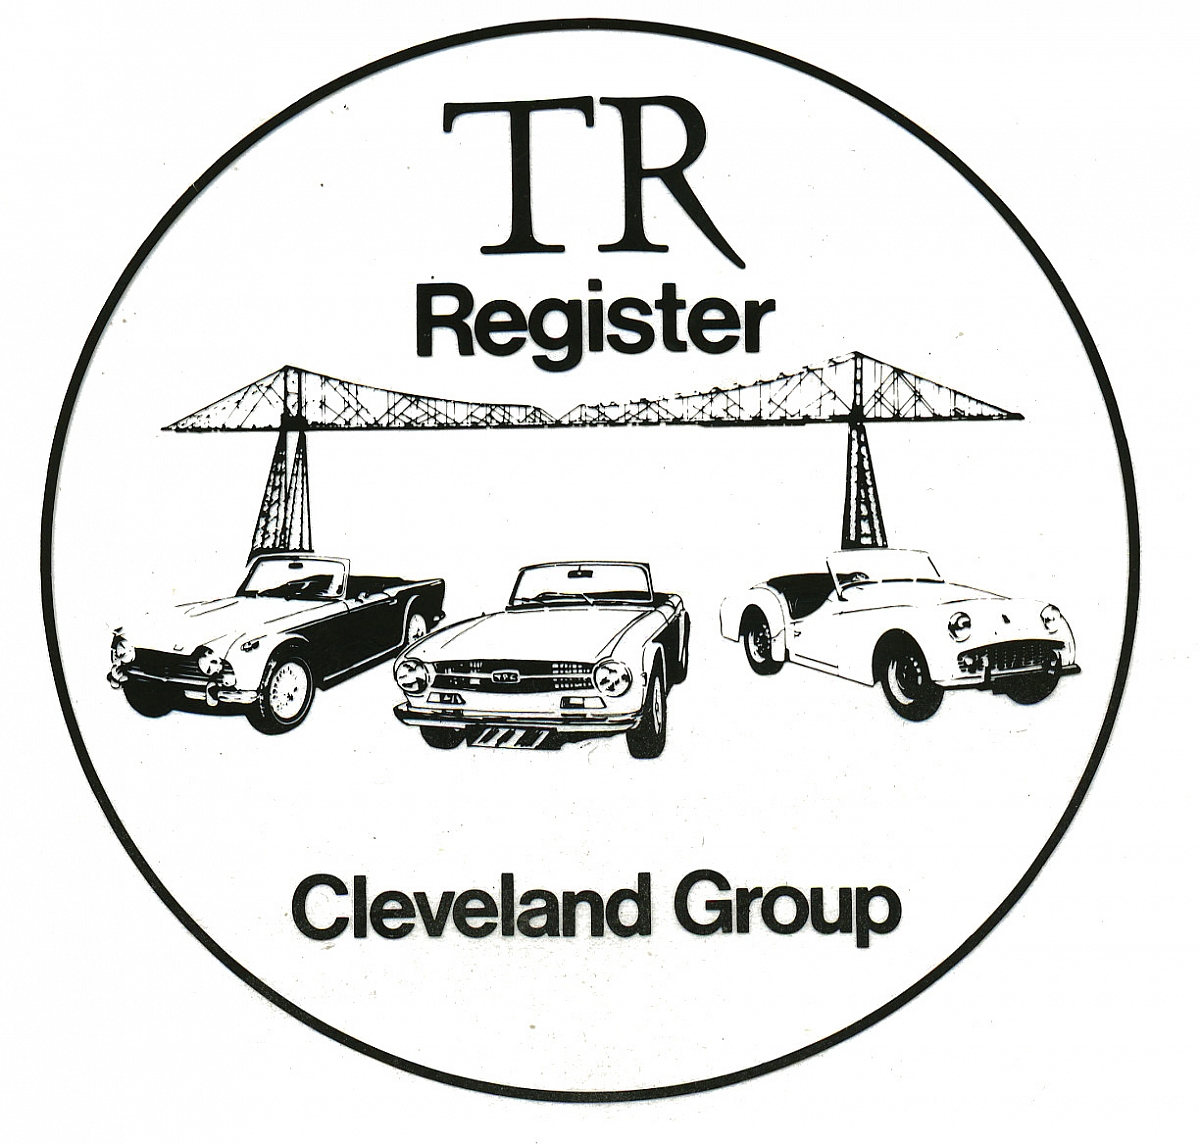 About Cleveland TR Group